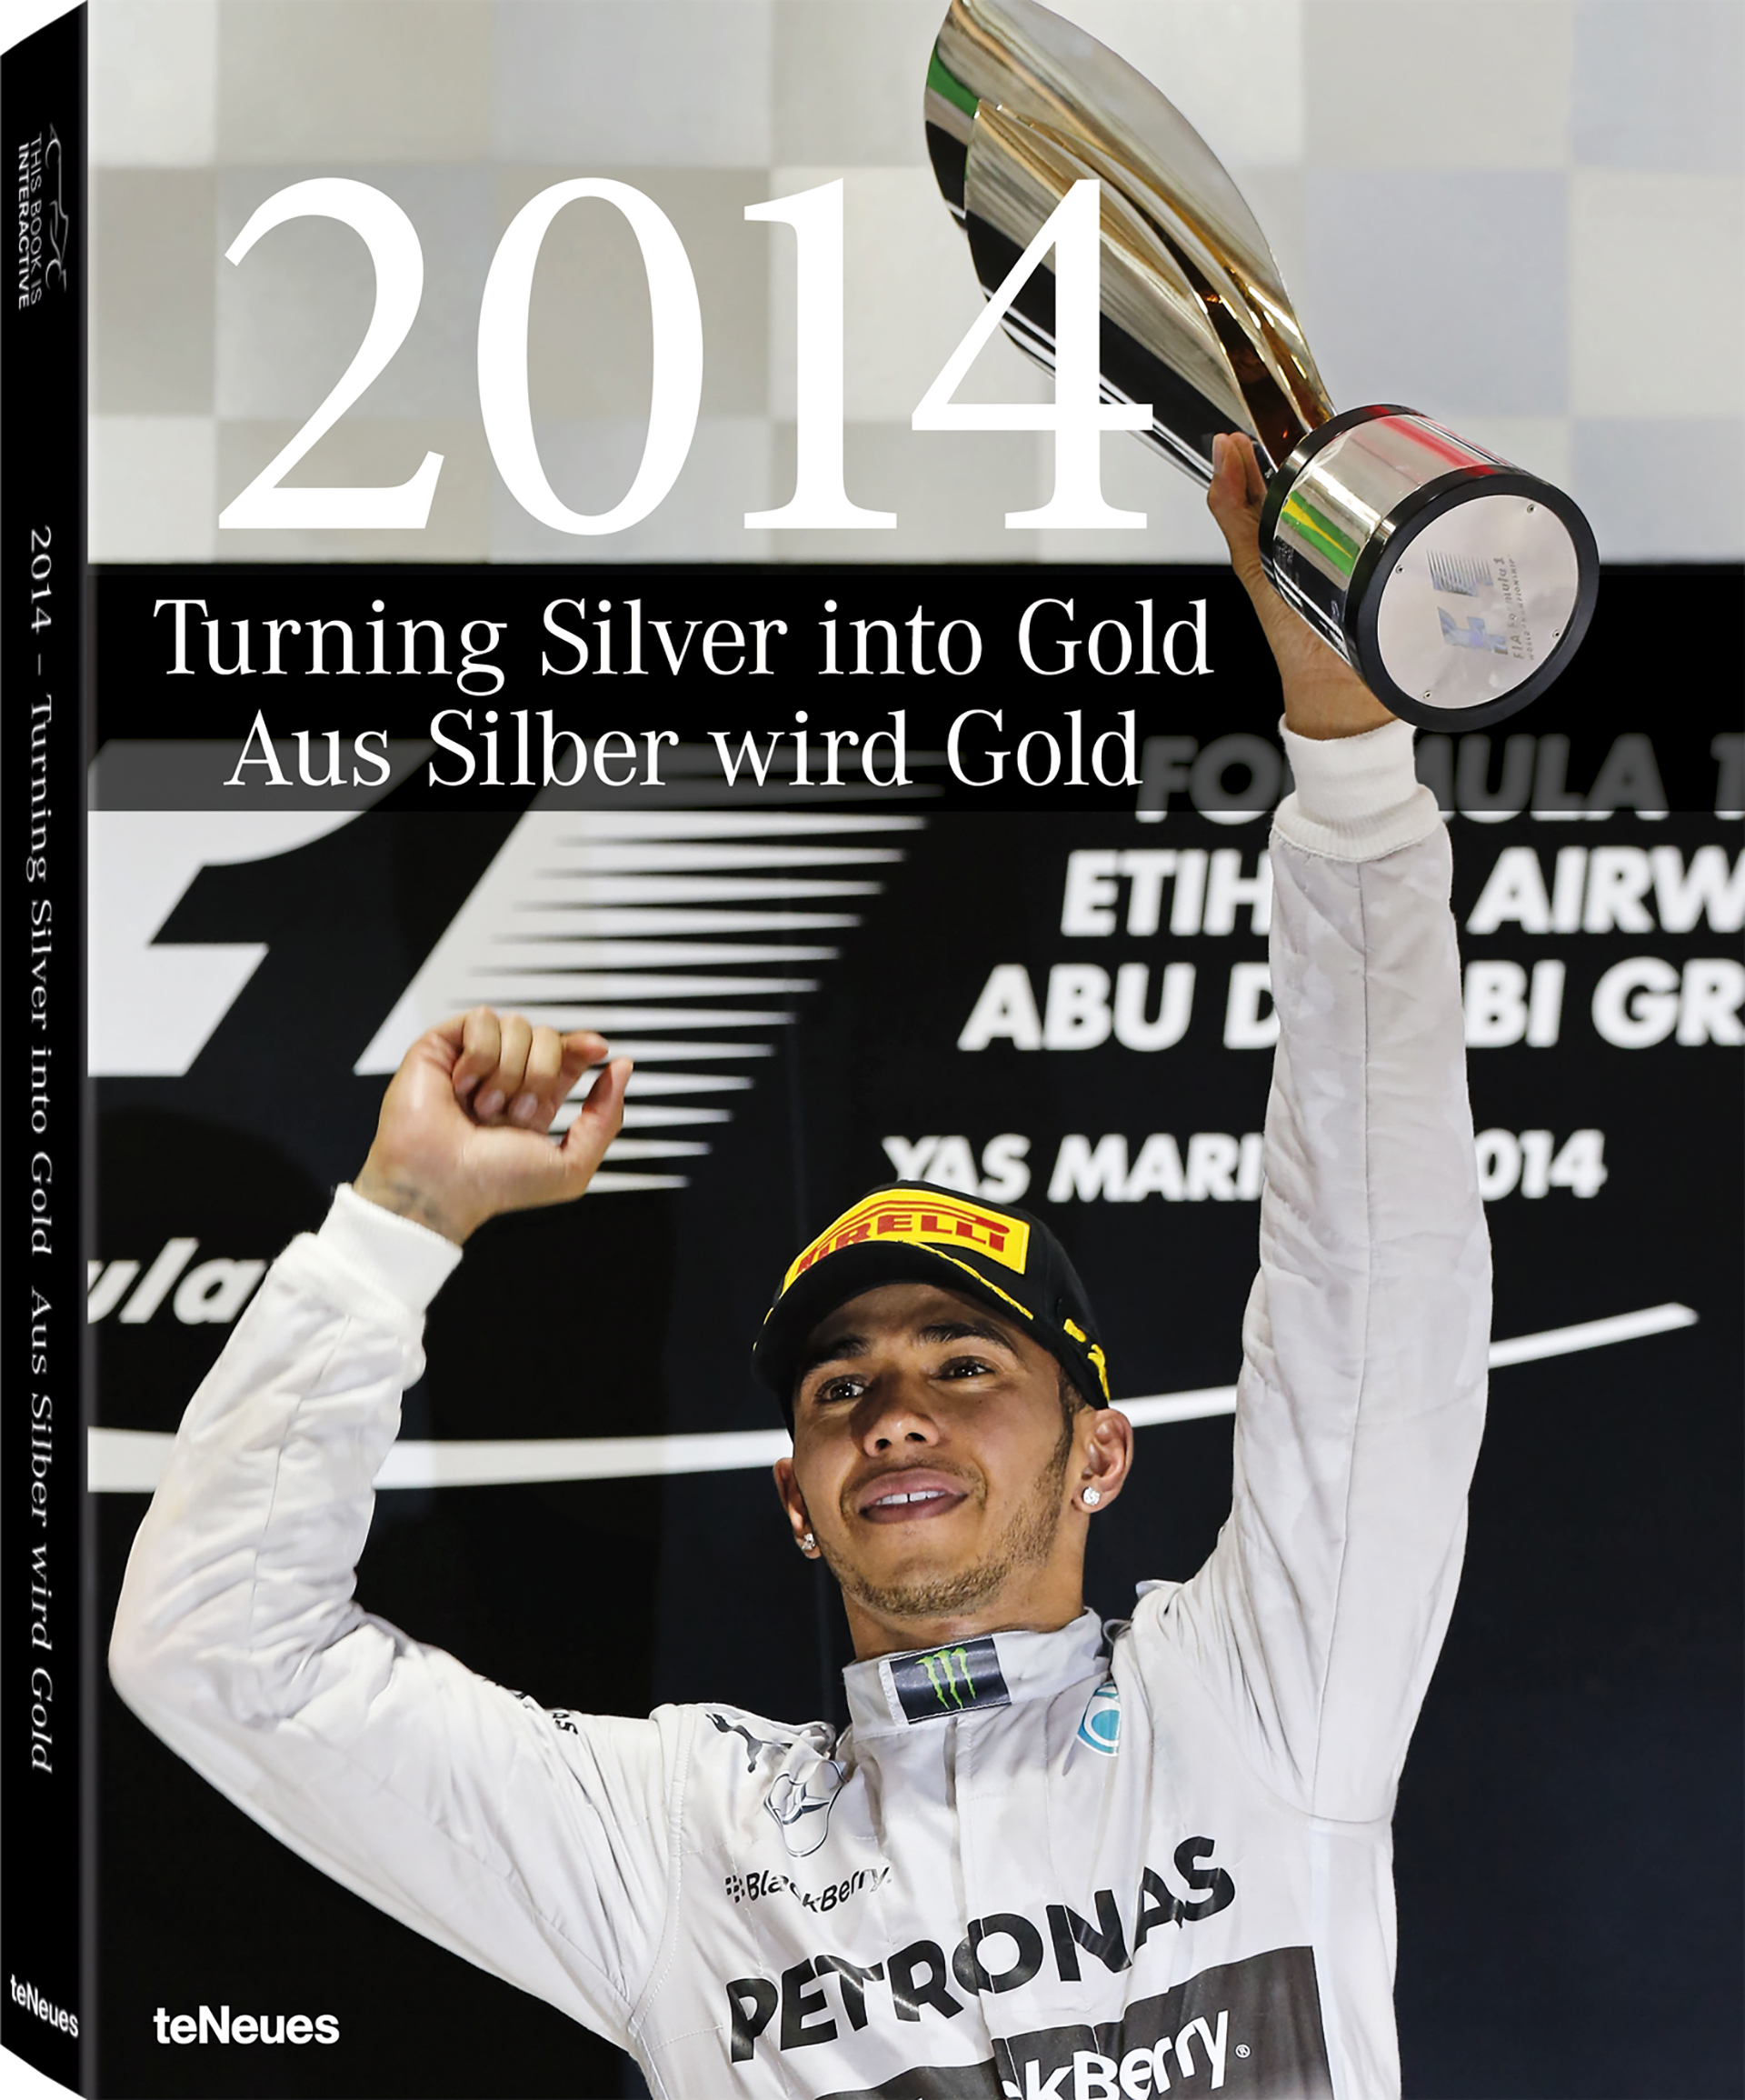 Turning Silver into Gold Mercedes-Benz - Corporate Publishing teNeues